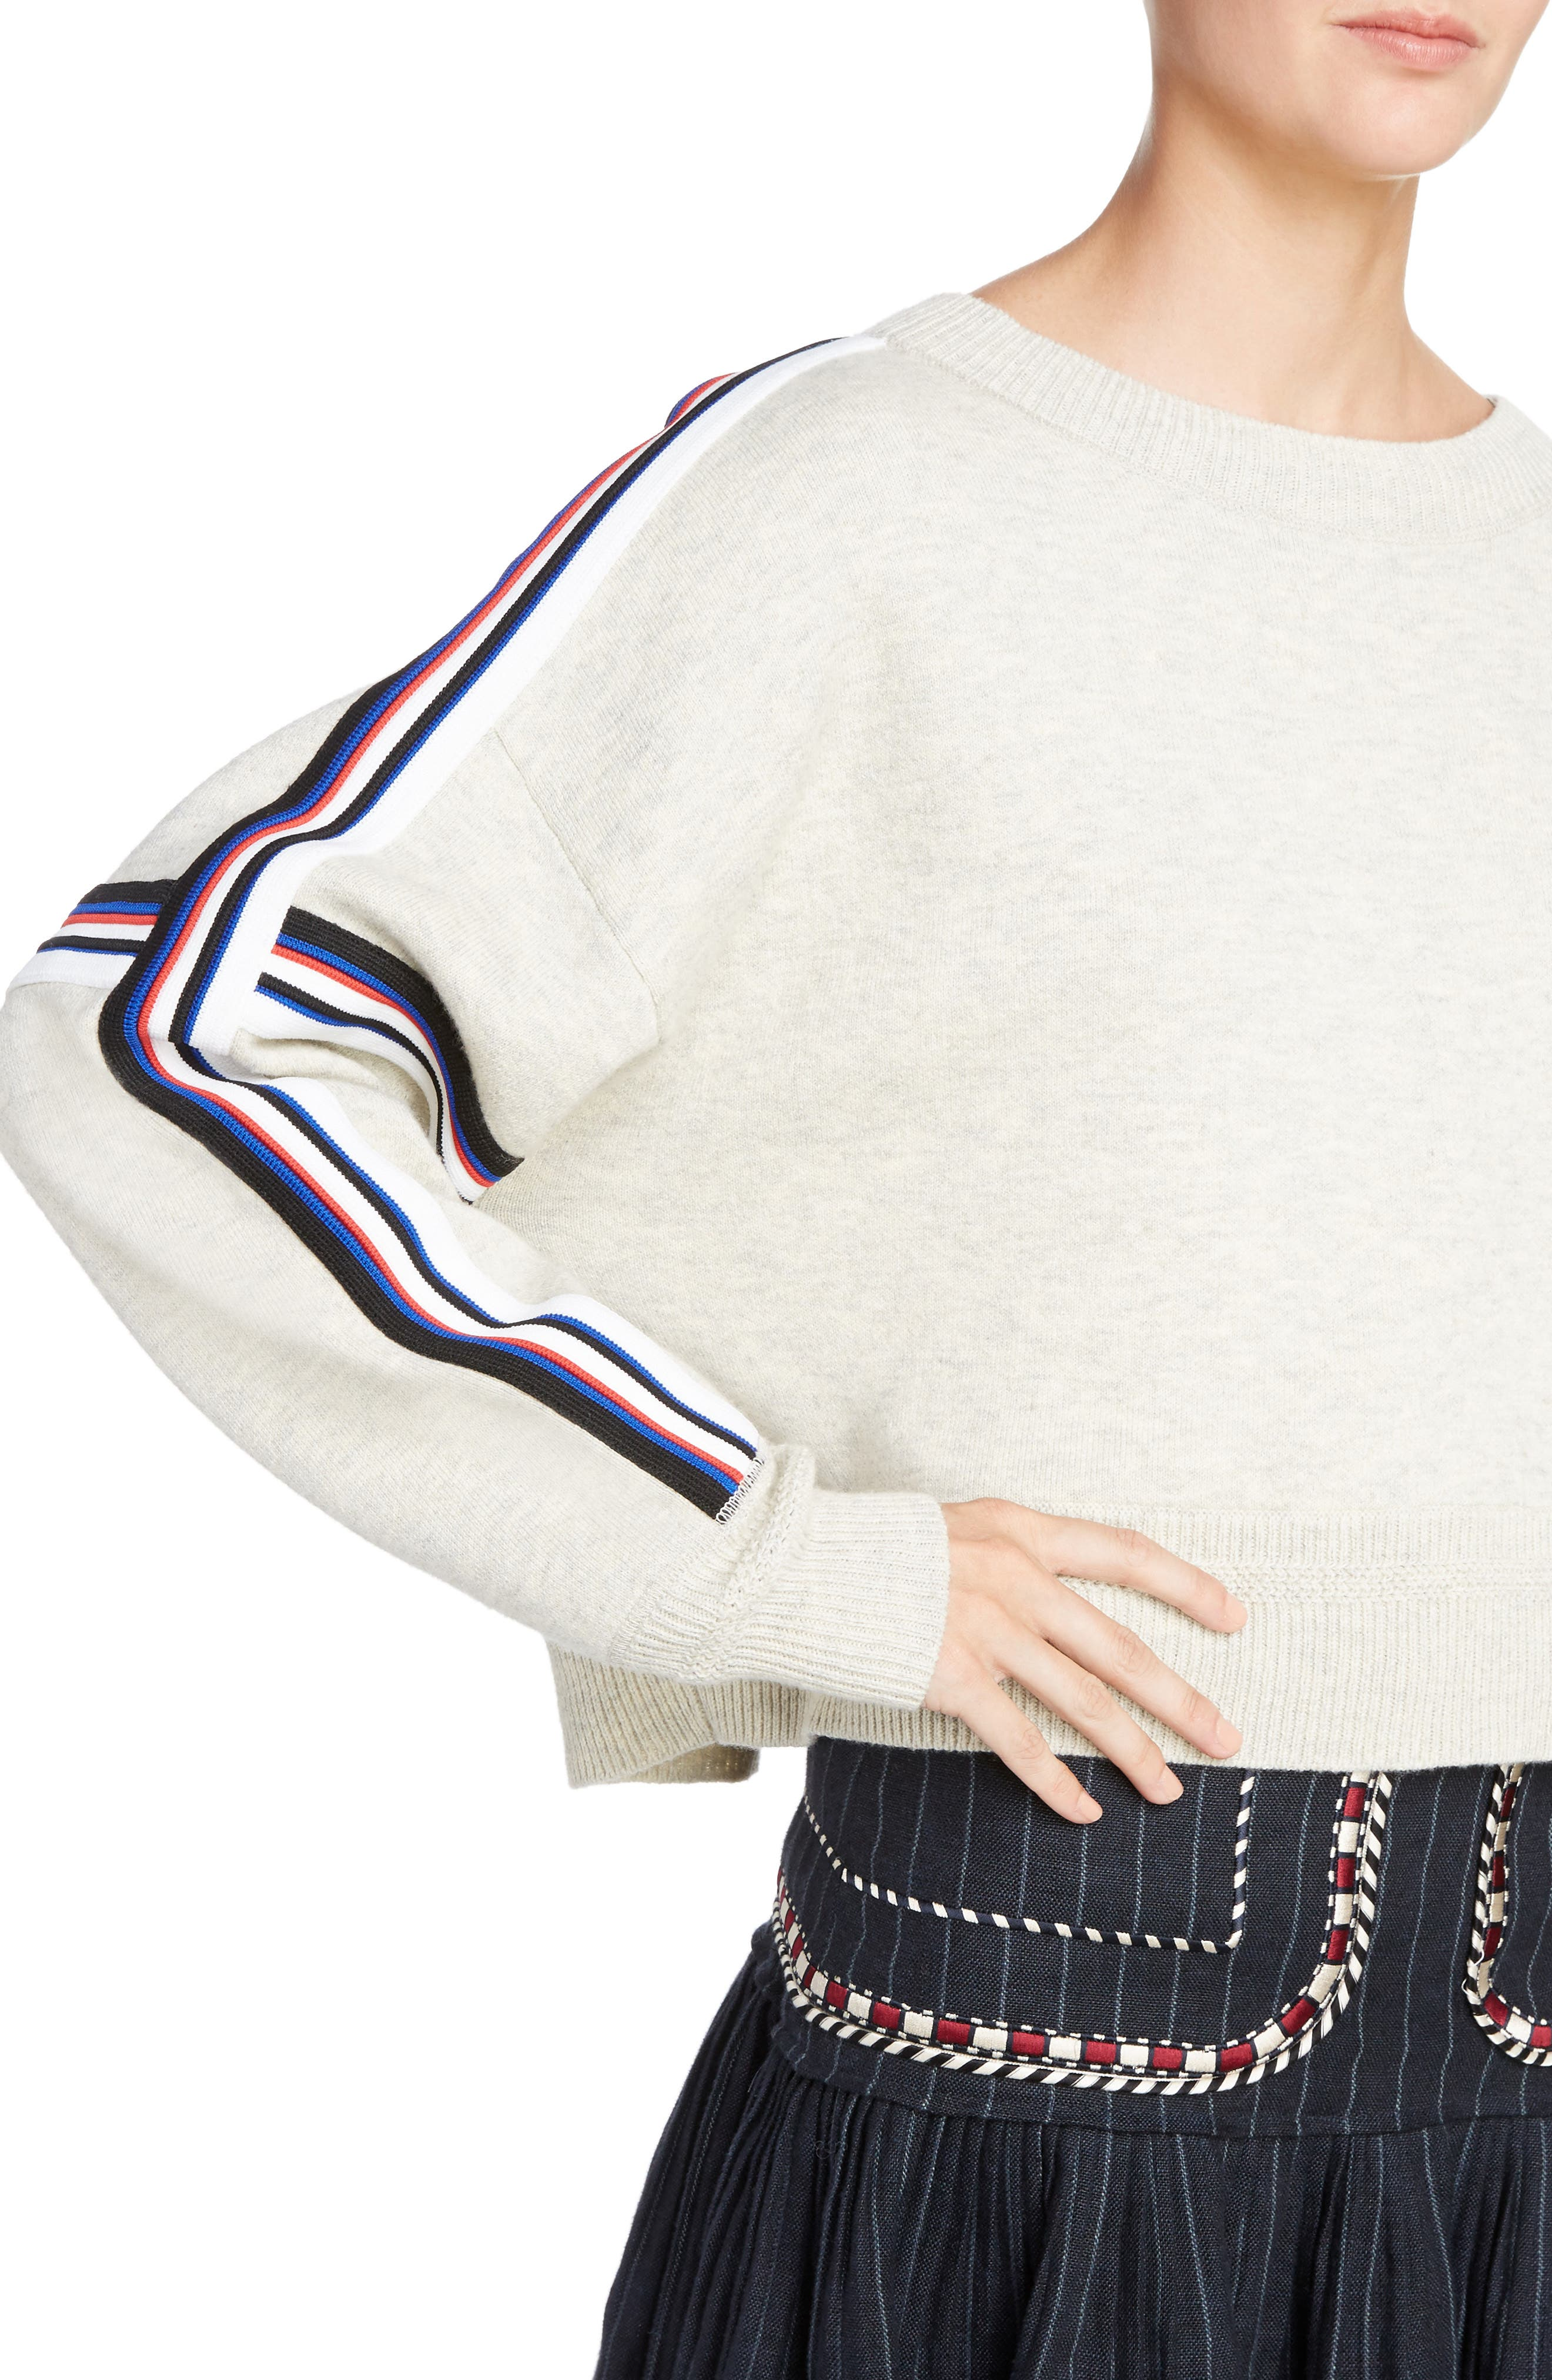 Isabel Marant Étoile Kao Sweatshirt,                             Alternate thumbnail 4, color,